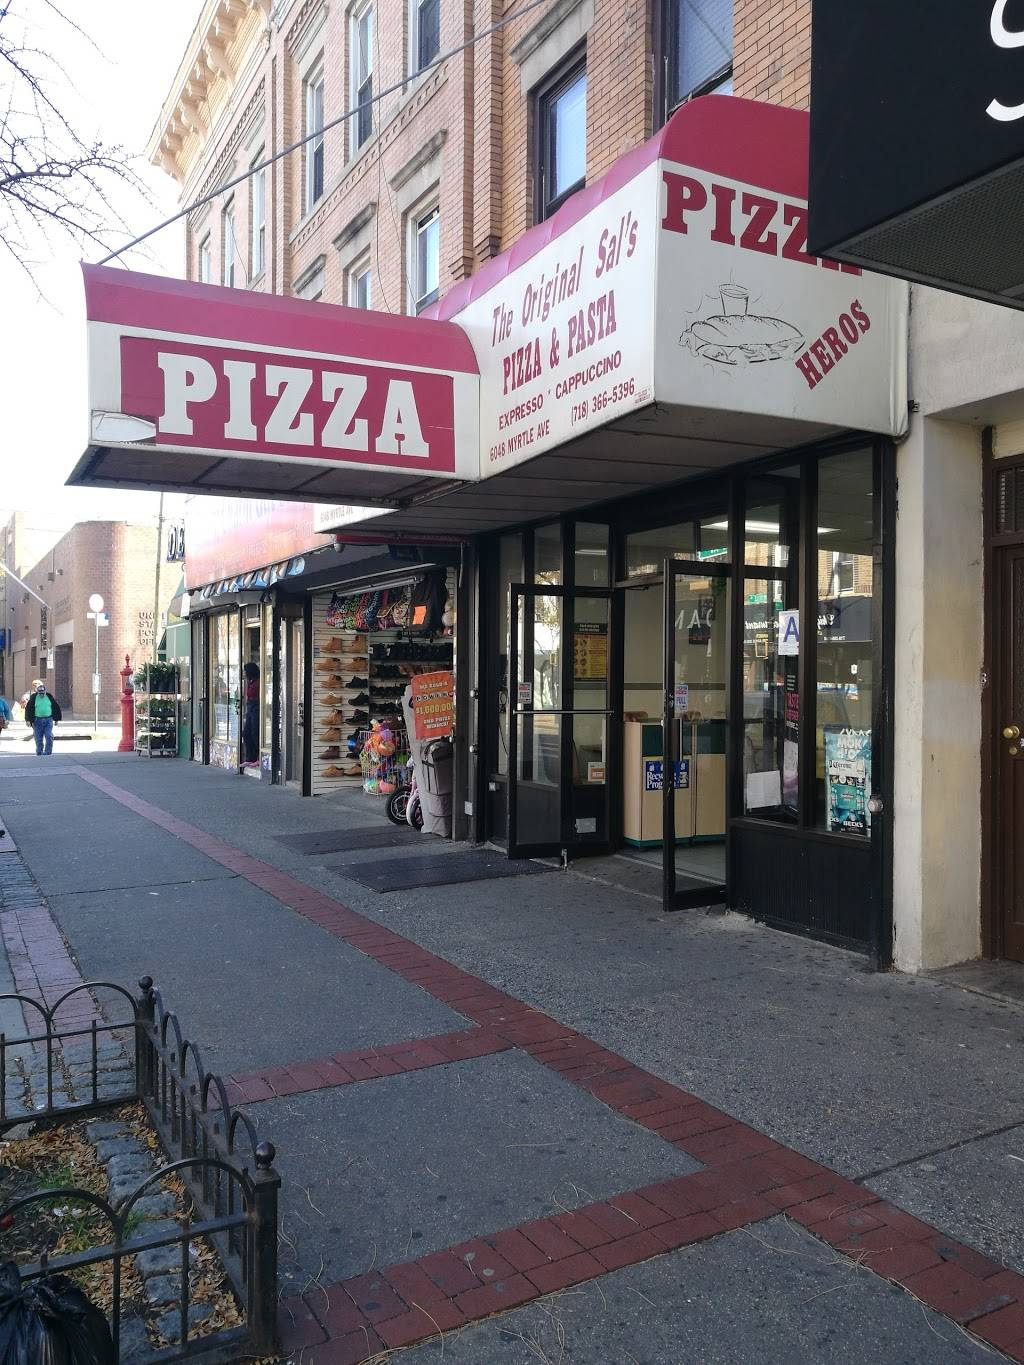 Original Sals Pizza | restaurant | 6048 Myrtle Ave, Flushing, NY 11385, USA | 7183665396 OR +1 718-366-5396